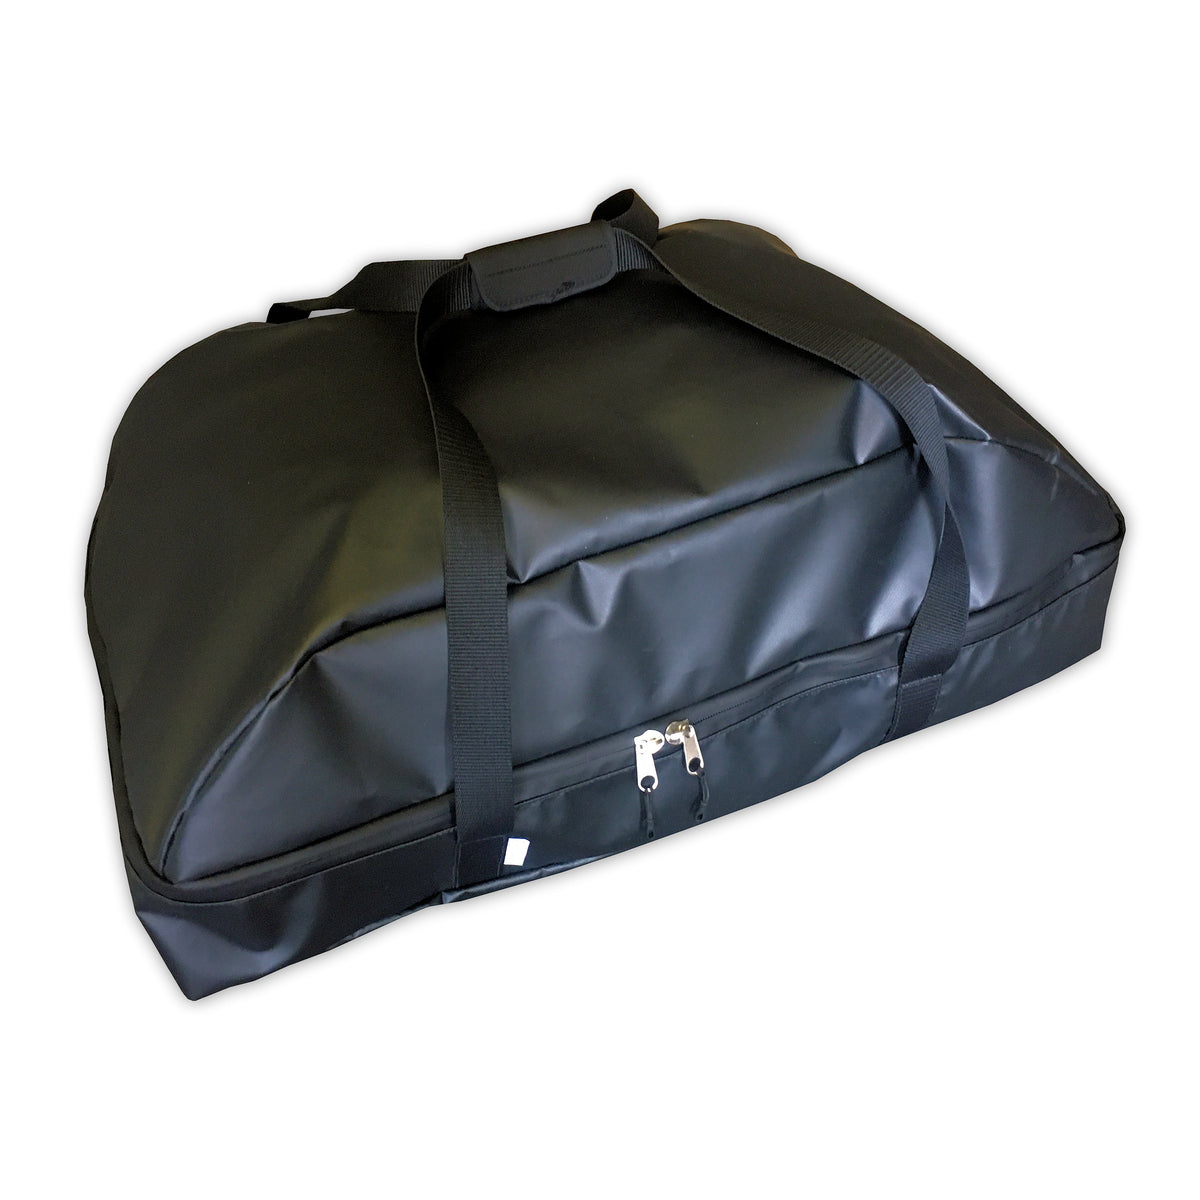 Weber Q1000 duffel bag in black